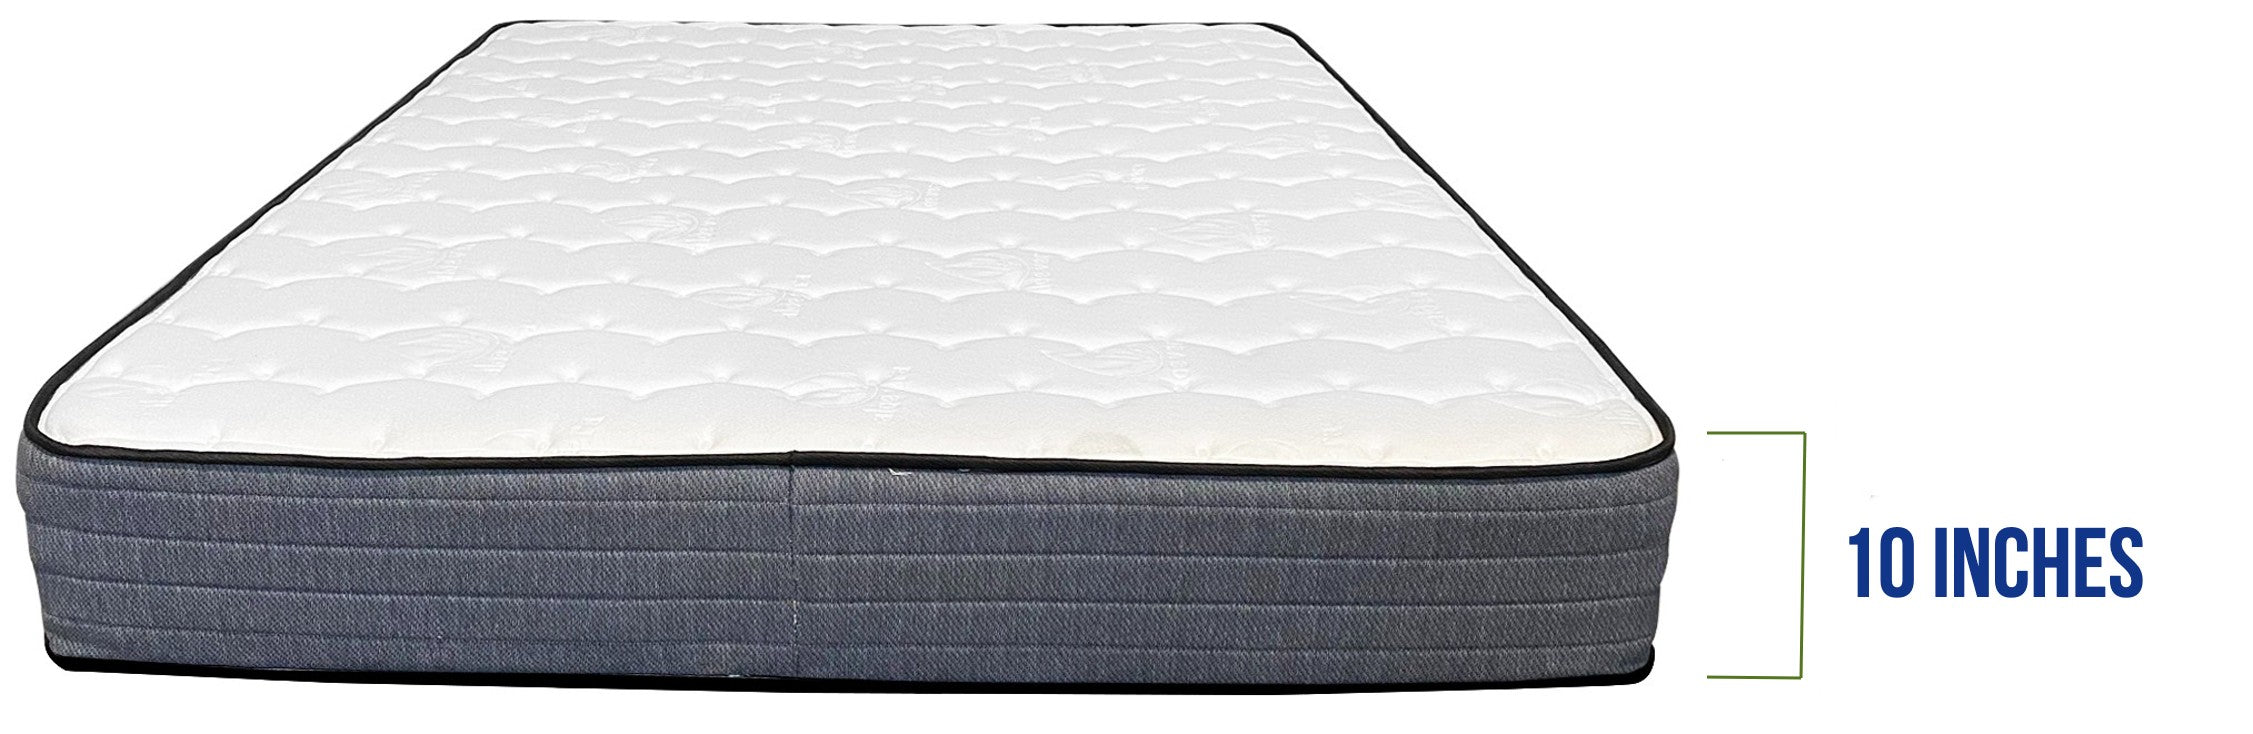 The Express Bed in a Box Mattress 10in Thickness